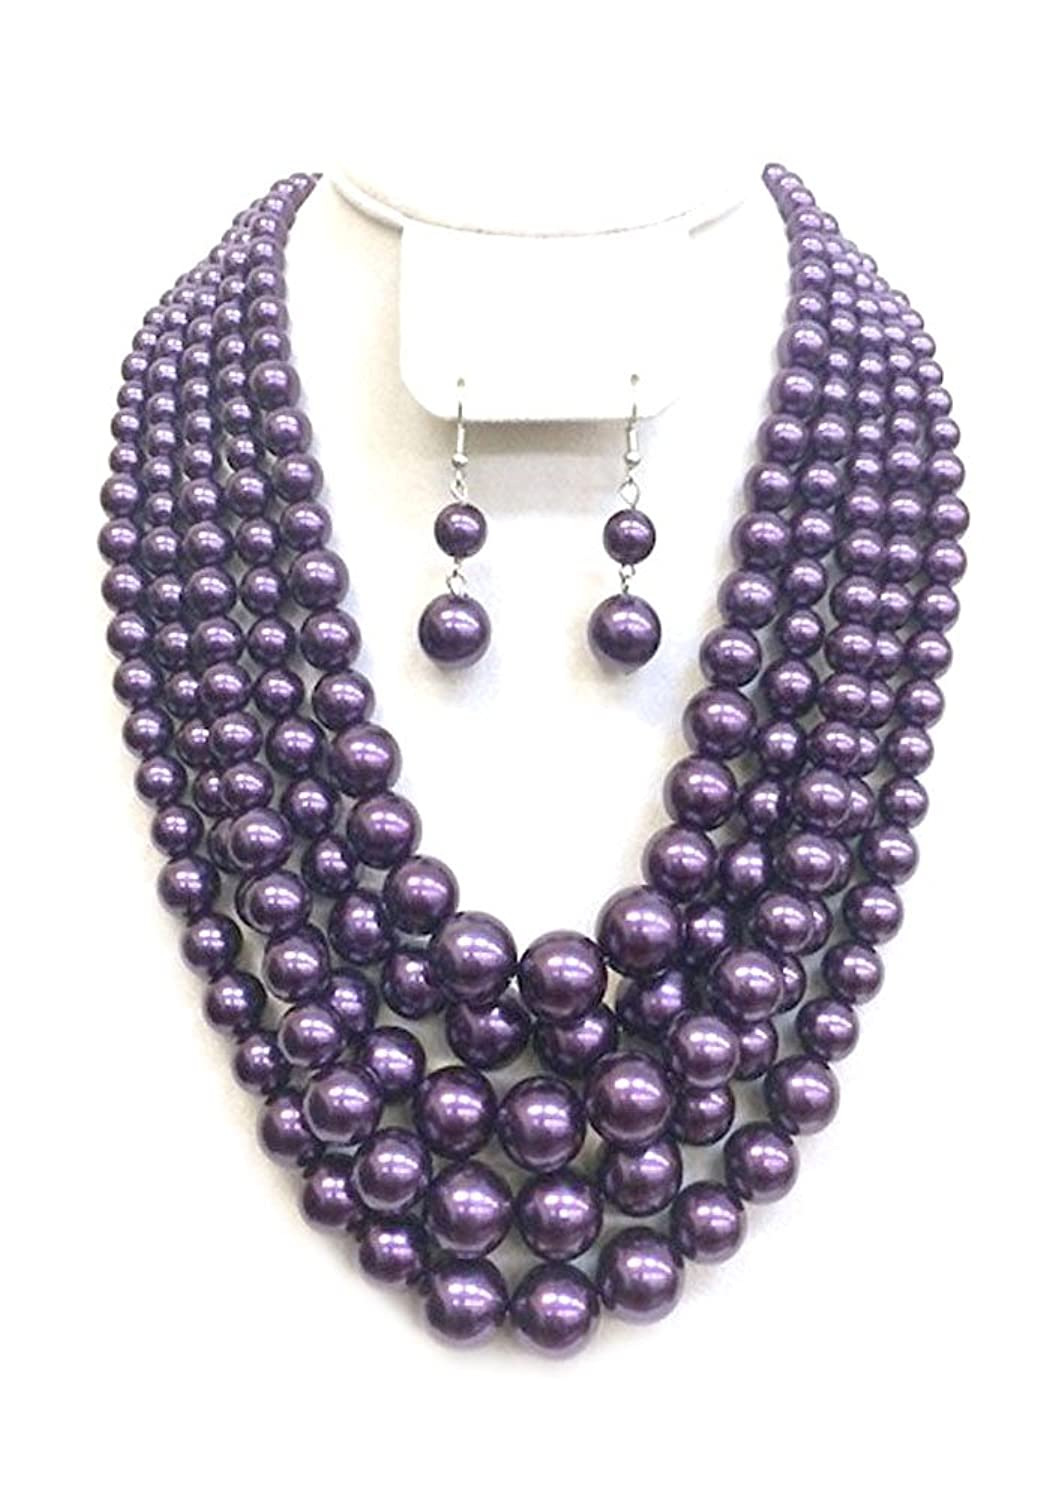 cheap Pearl Multi Layered Necklace Set CENPY043 free shipping